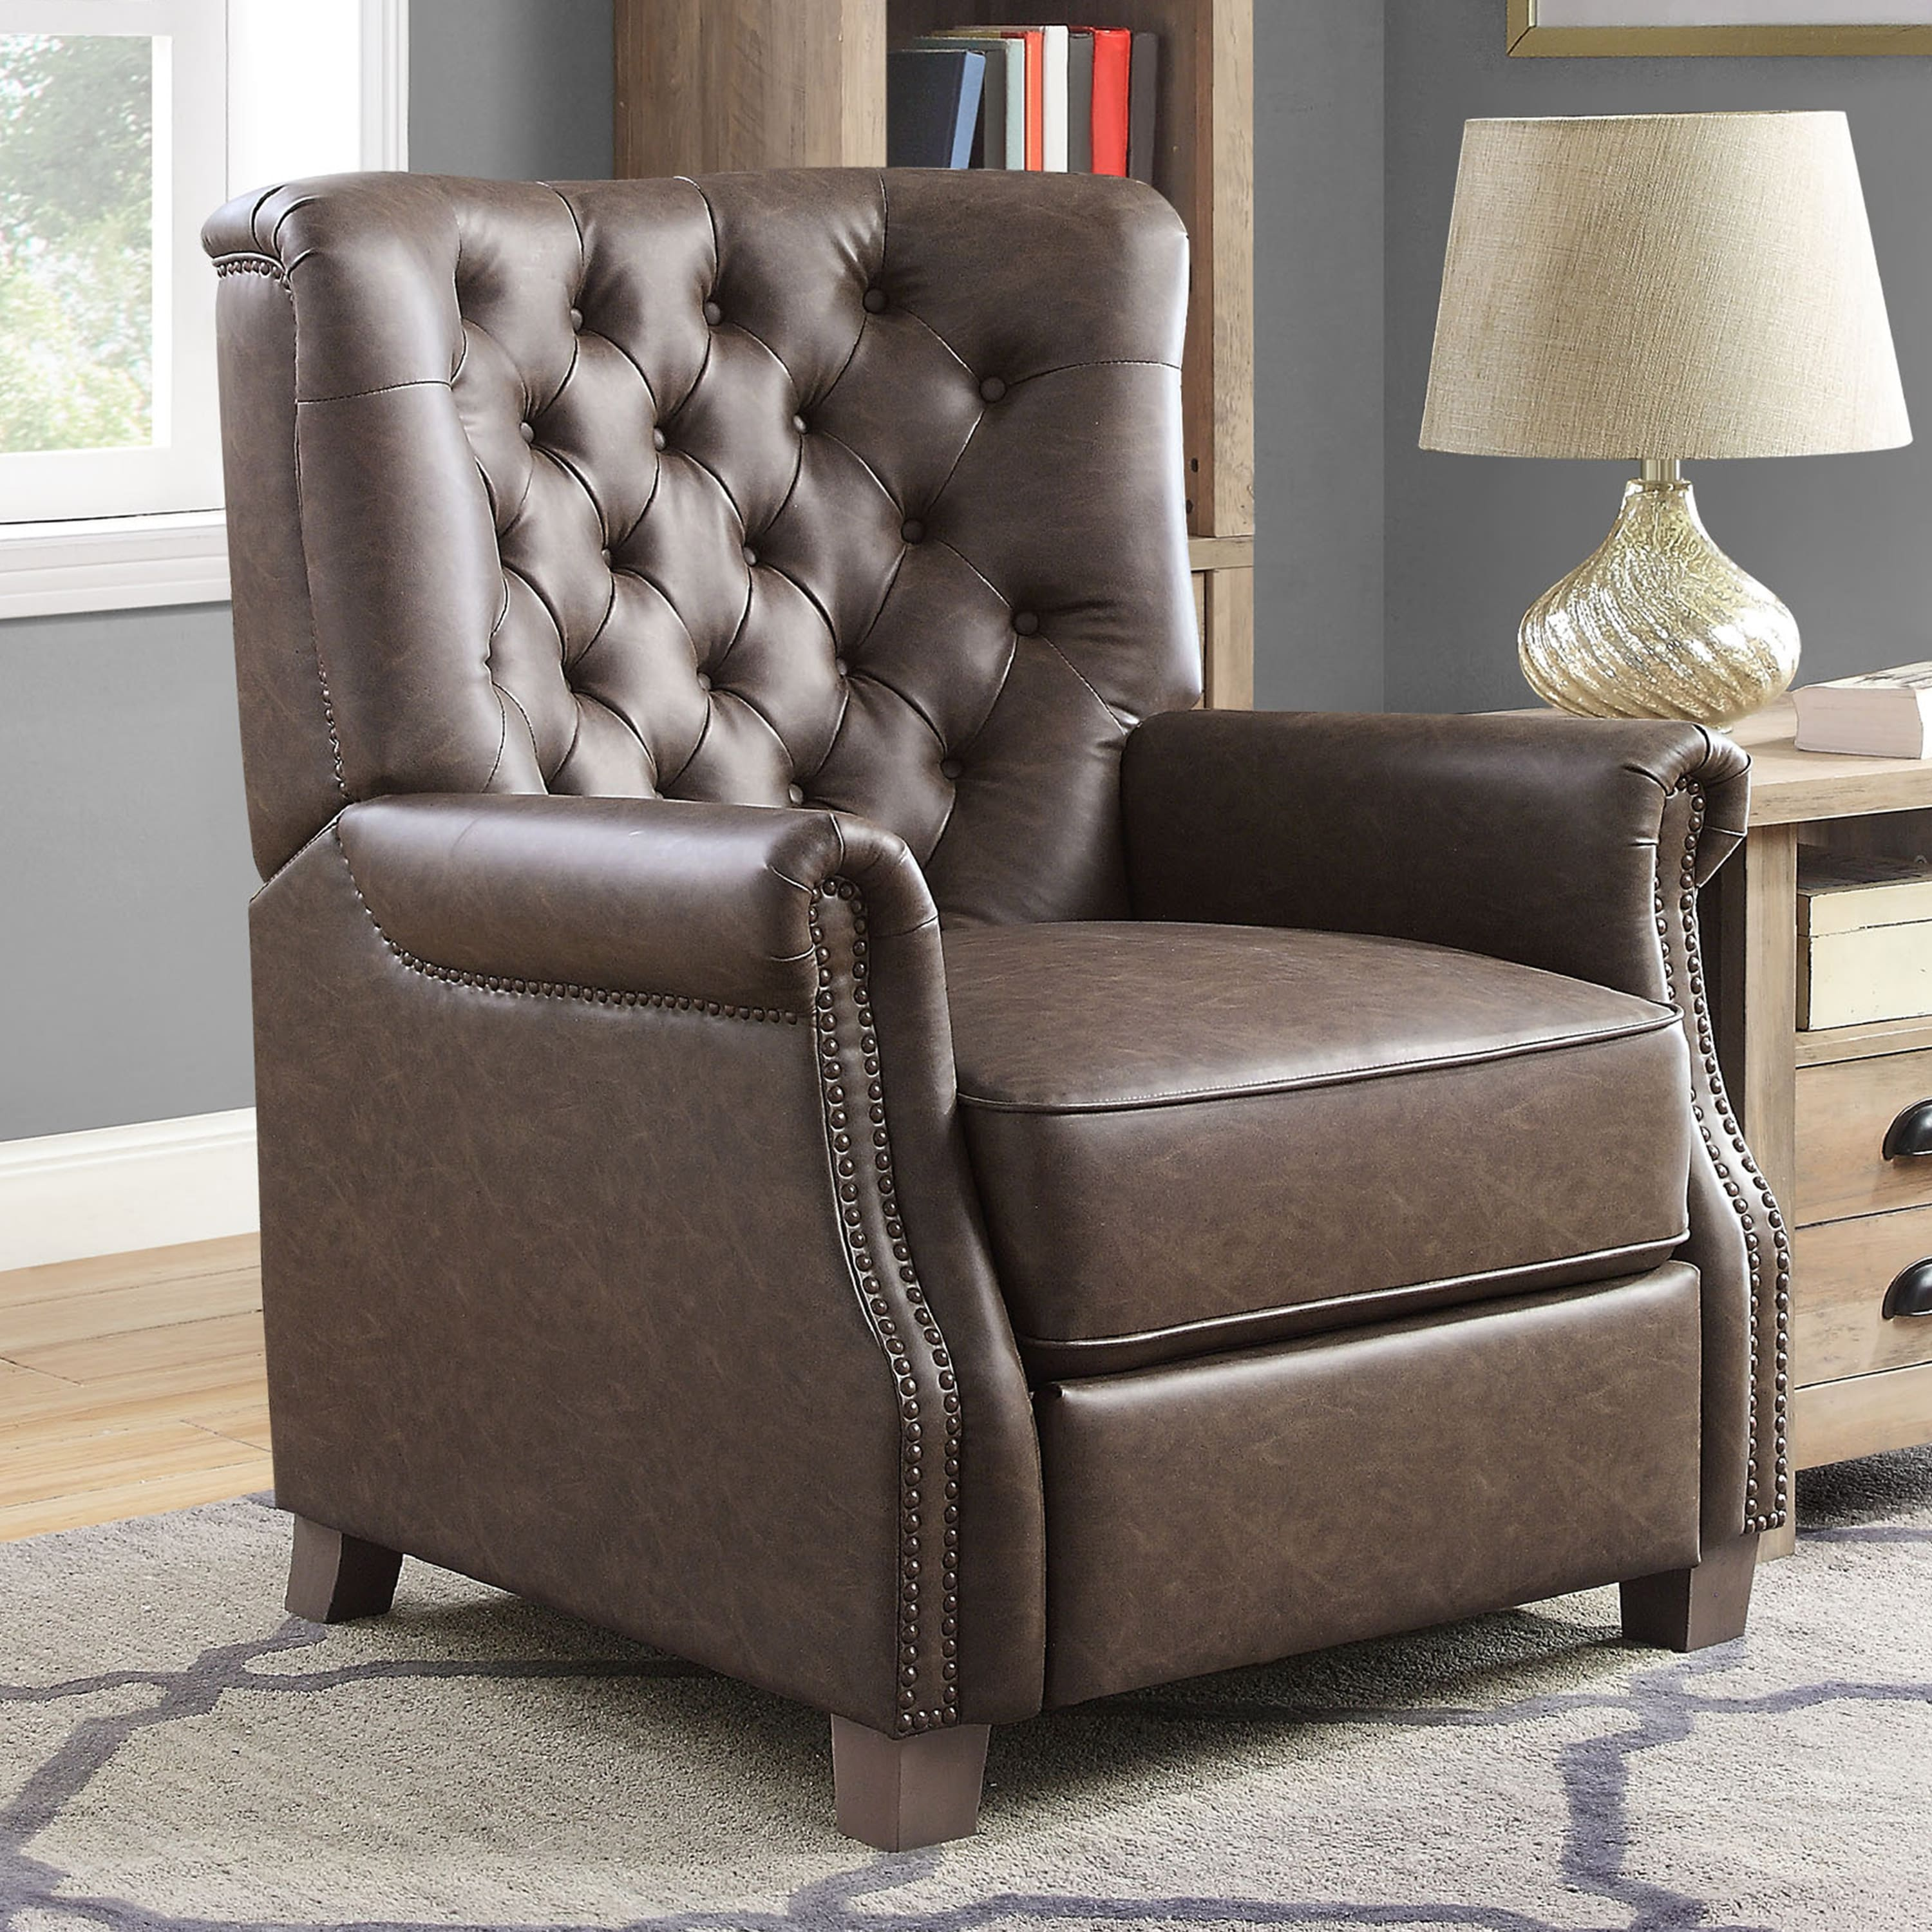 Better Homes and Garden Tufted Push Back Recliner (Brown Faux Leather) $151.51 + Free shipping